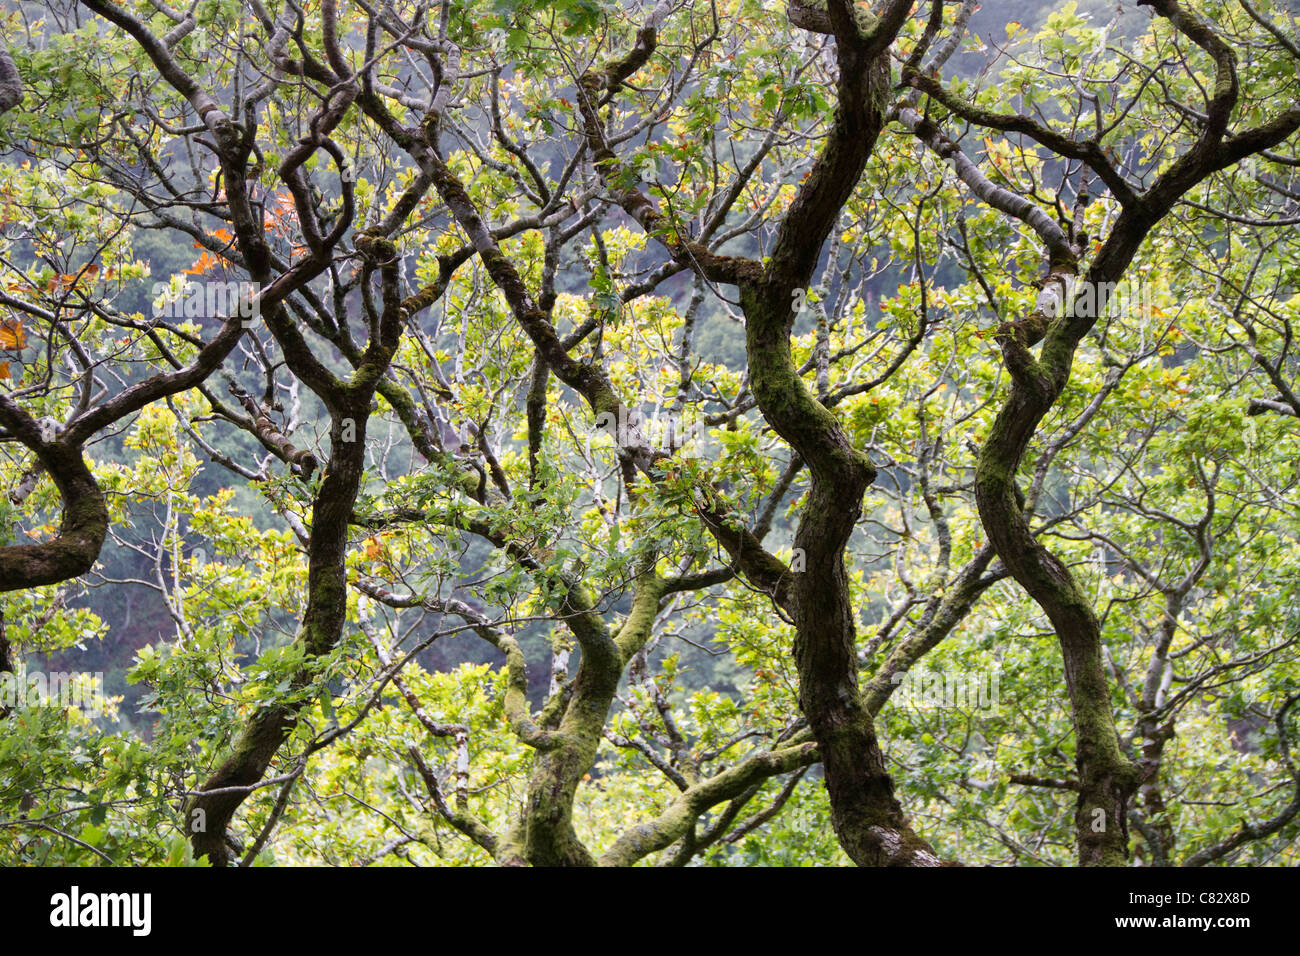 Branches of an oak tree. - Stock Image